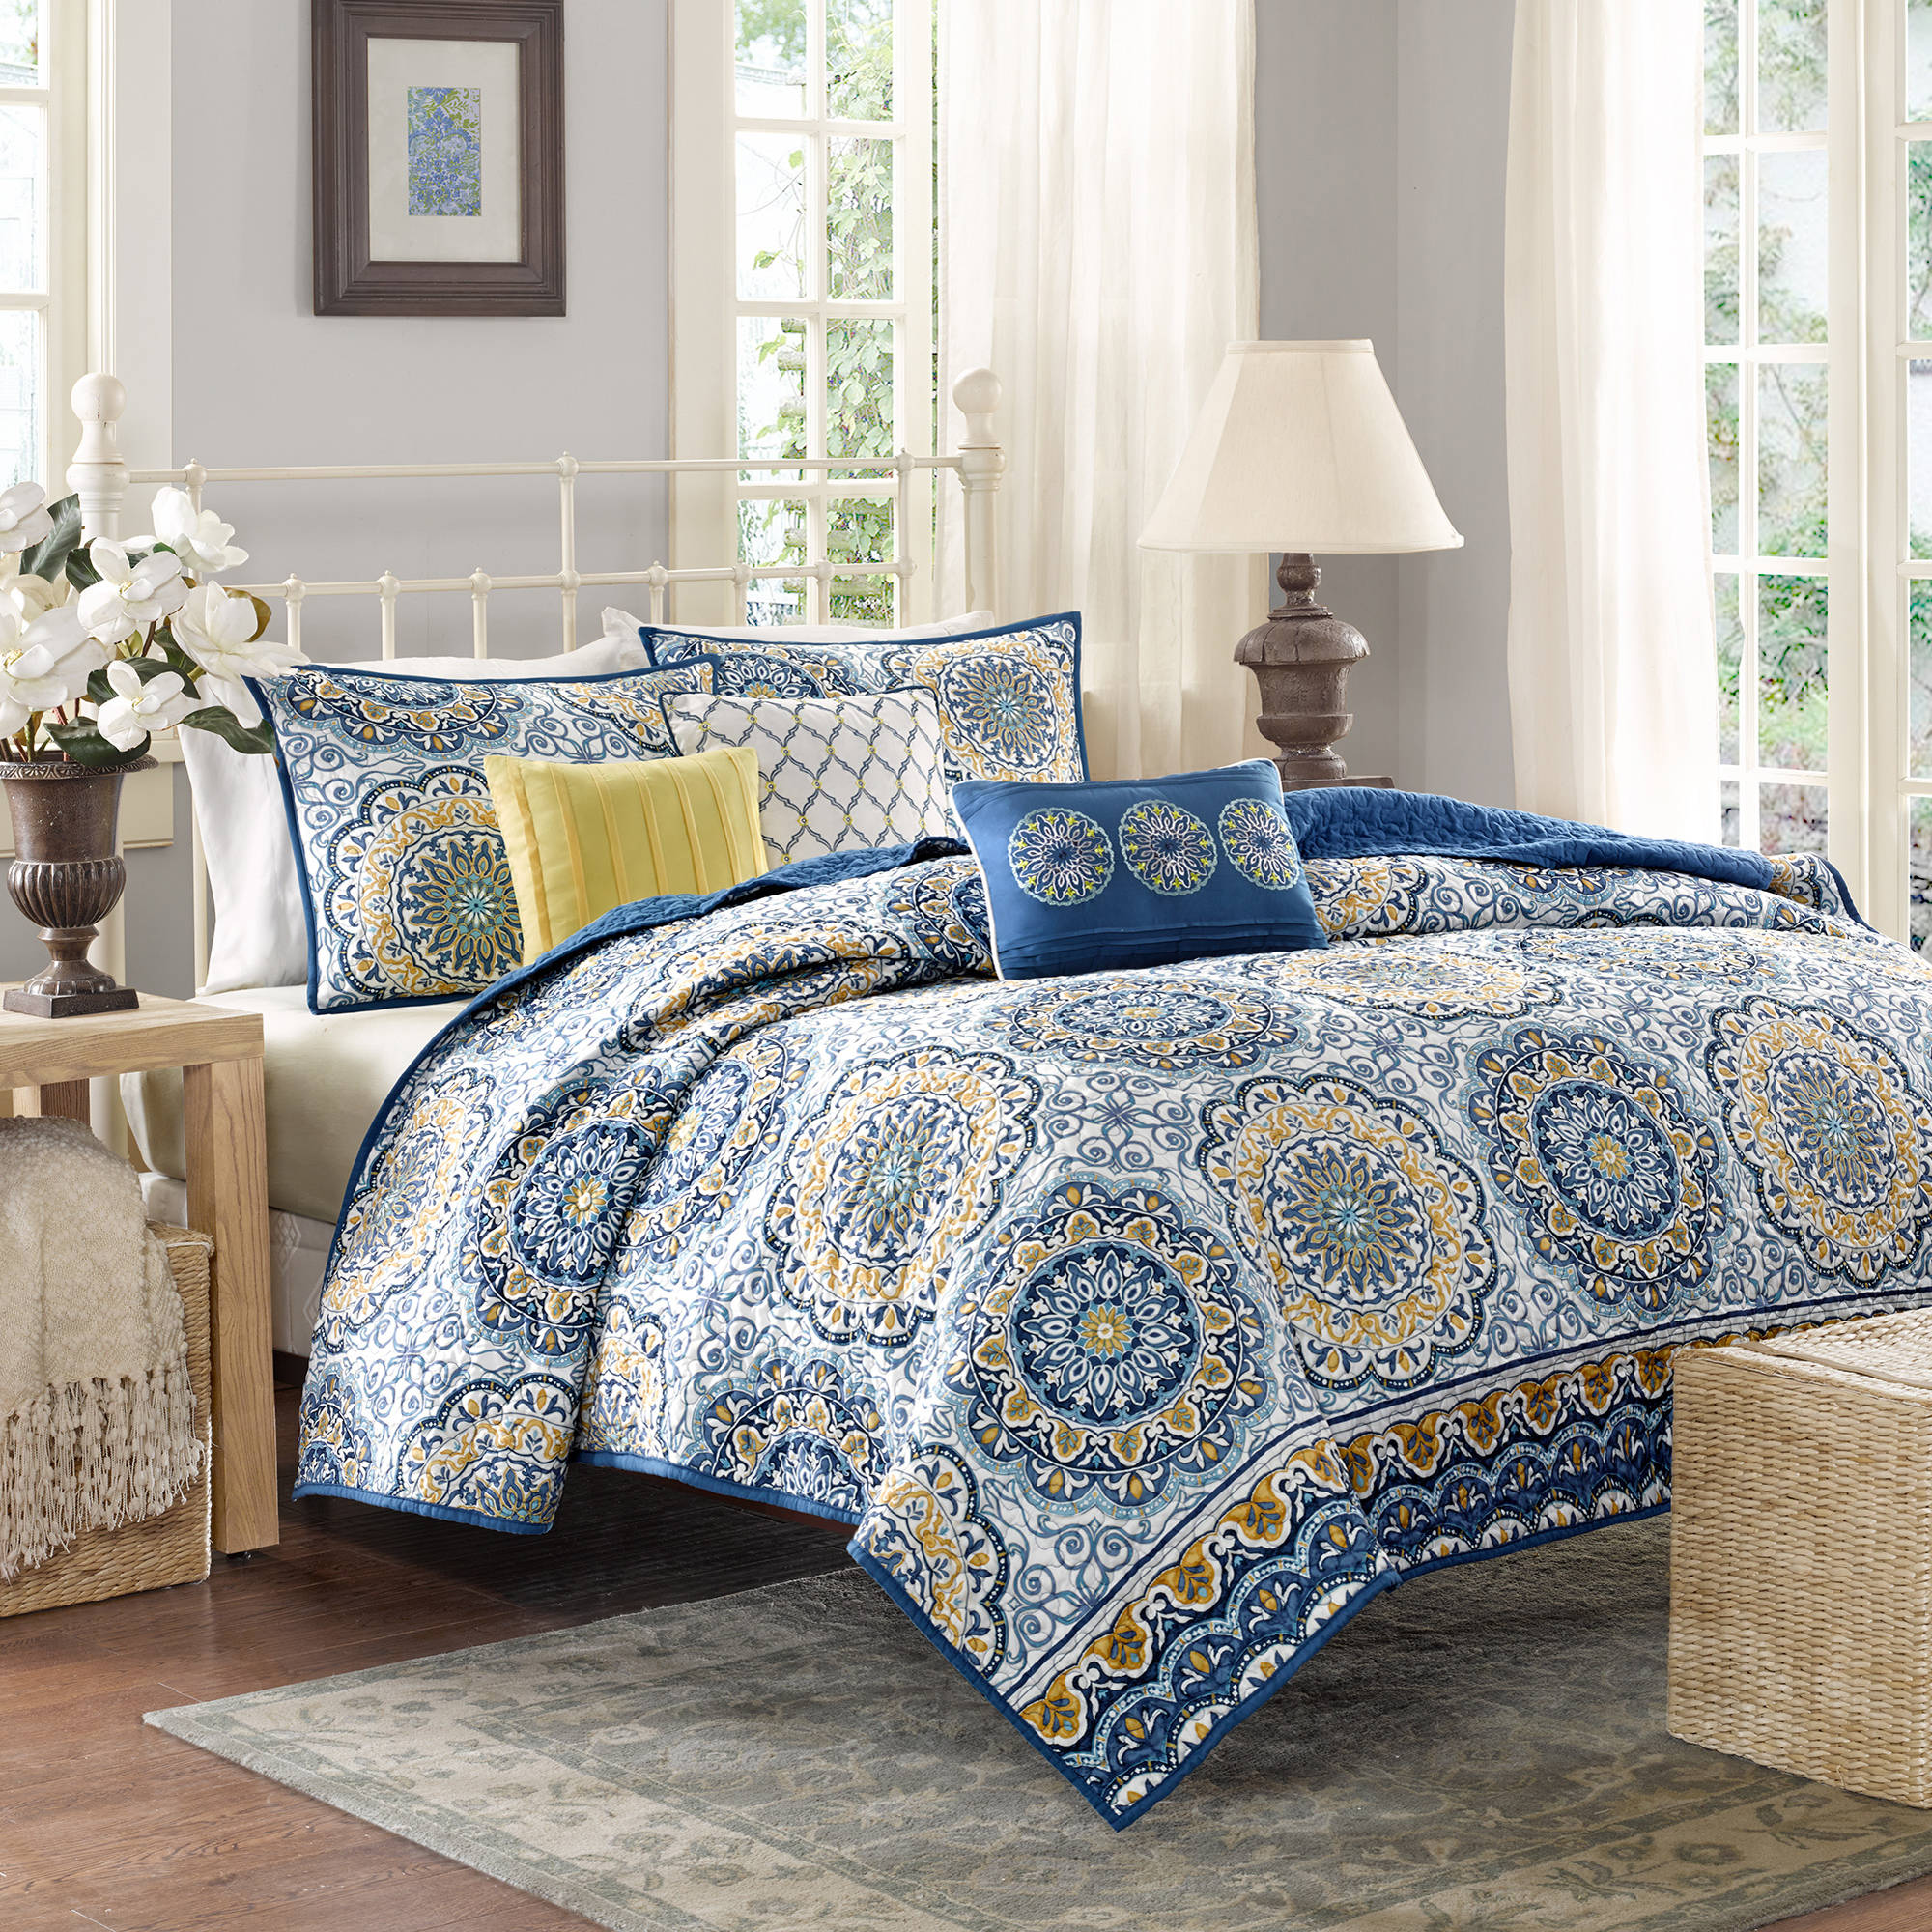 Home Essence Menara 6 Piece Reversible Printed Coverlet Bedding Set